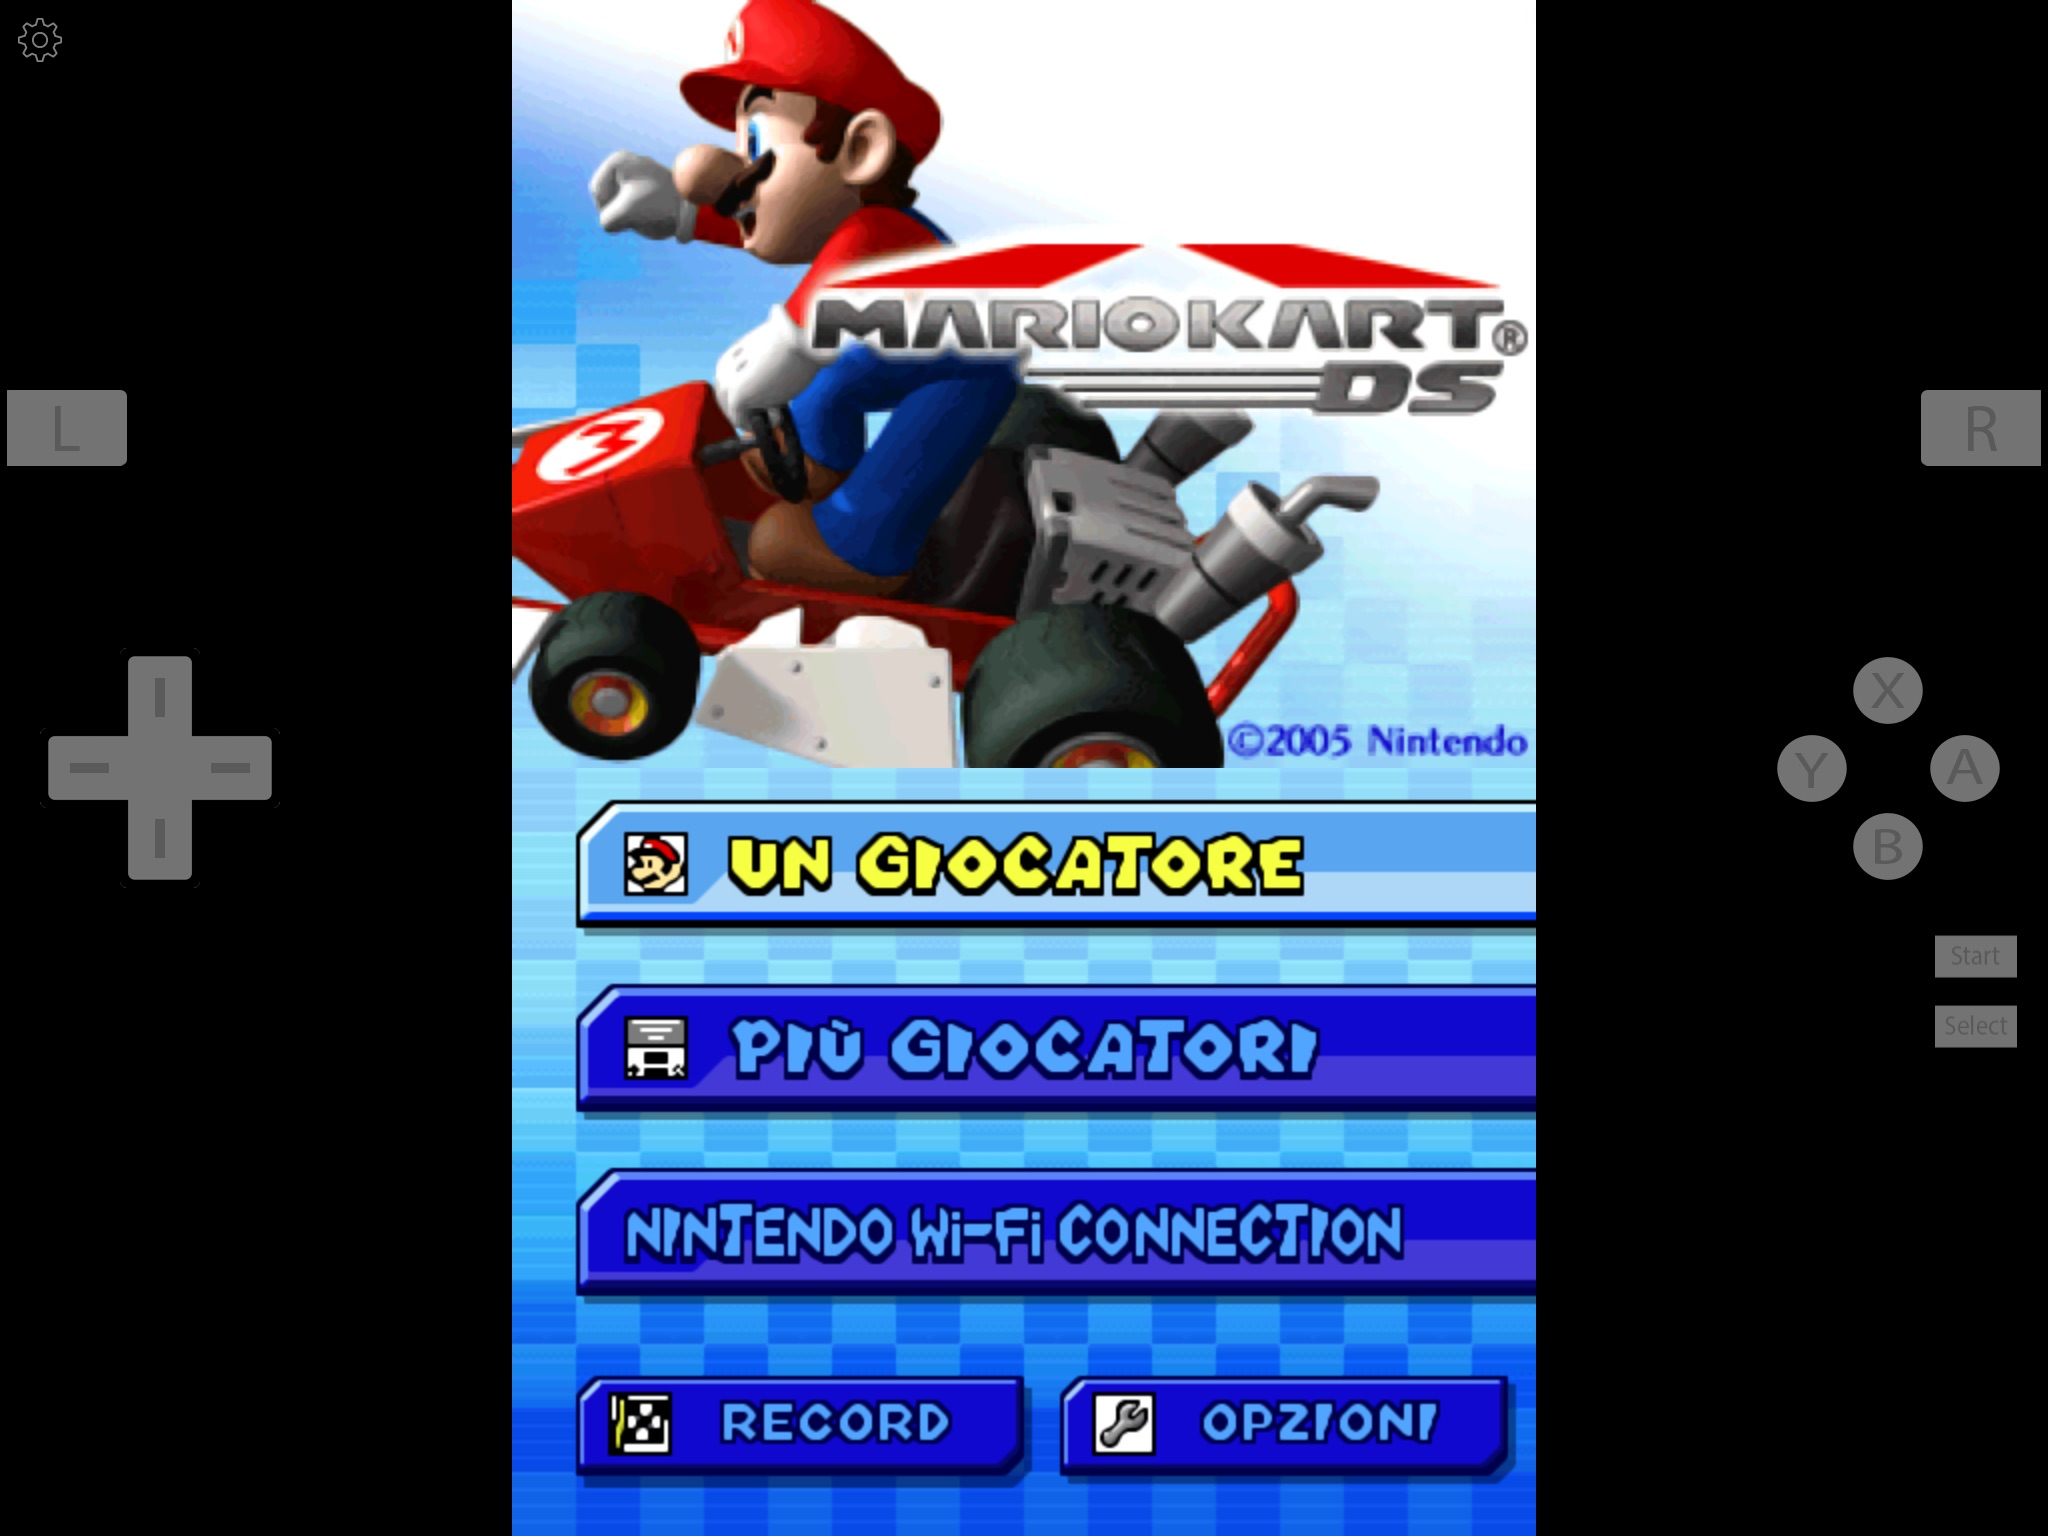 Getting Emulators (PSP,DS and more) on your non-jailbroken iOS